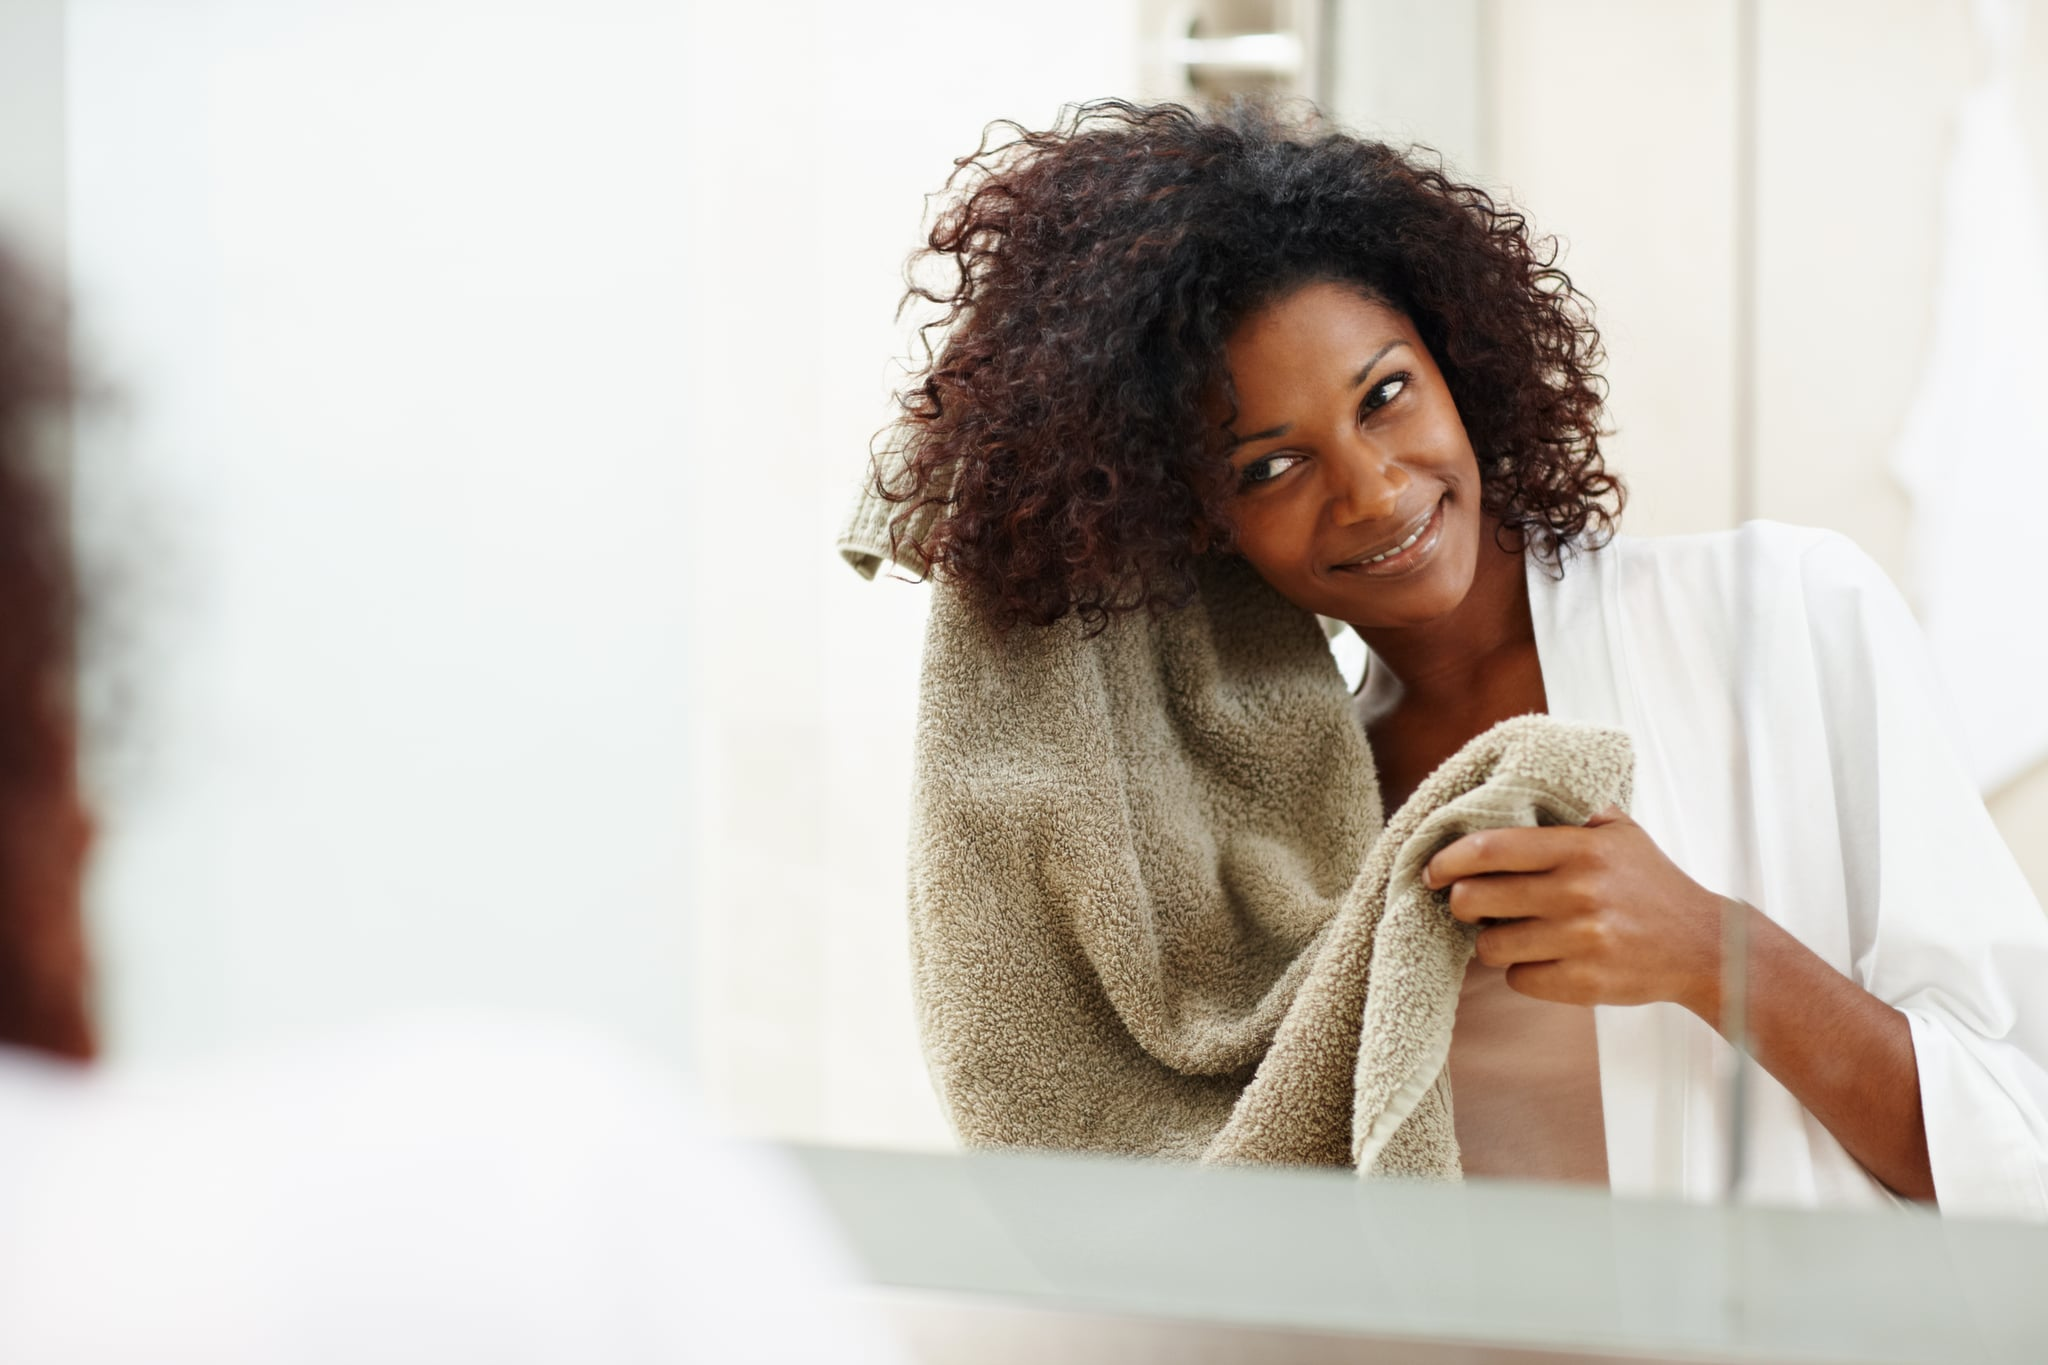 Beautiful african woman drying her hair with a towel in the mirror